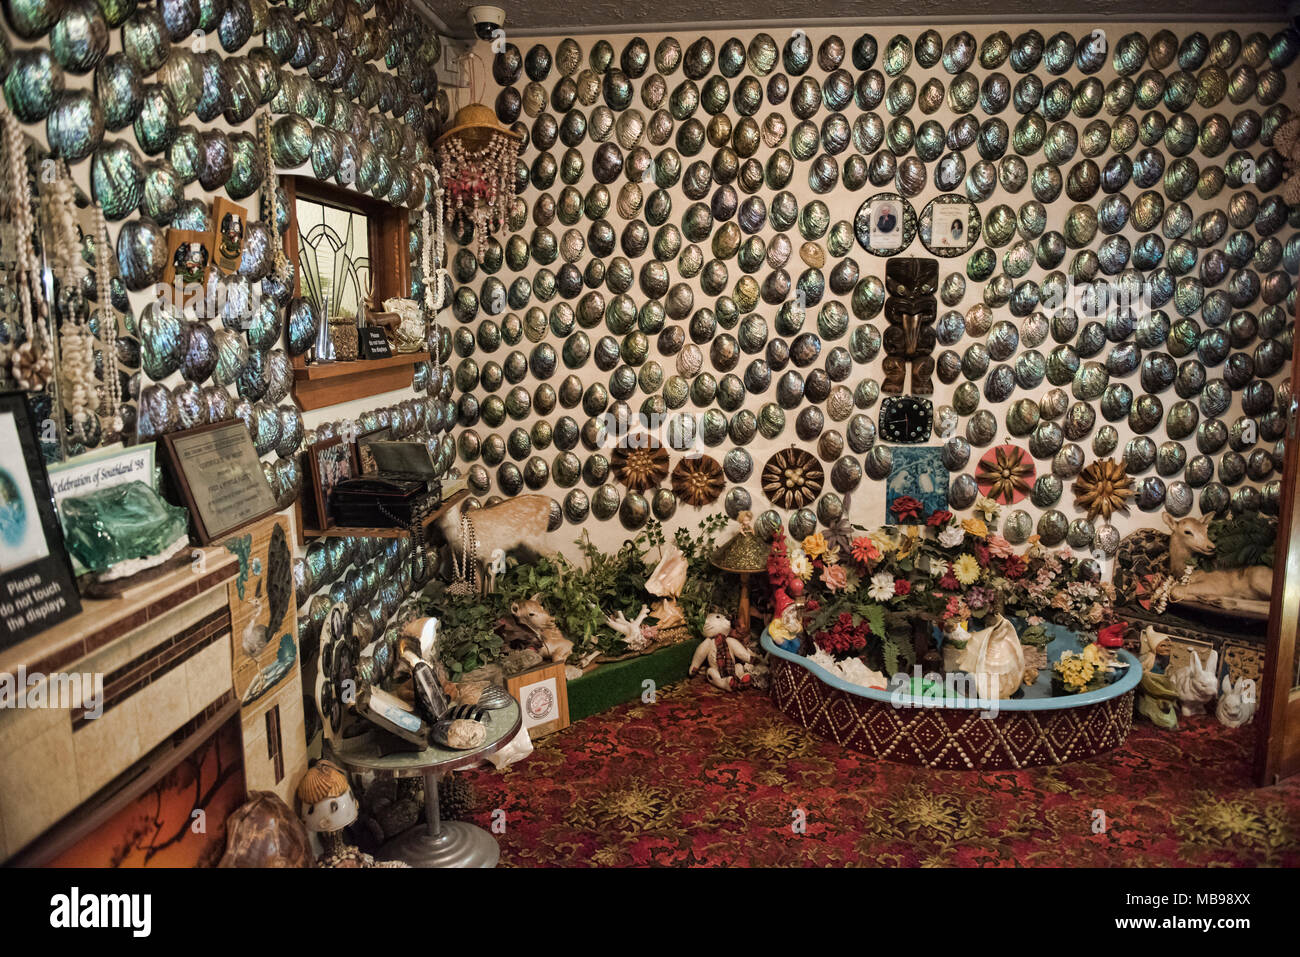 Fred and Myrtle Flutey's Paua Shell House, Canterbury Museum, Christchurch, New Zealand - Stock Image